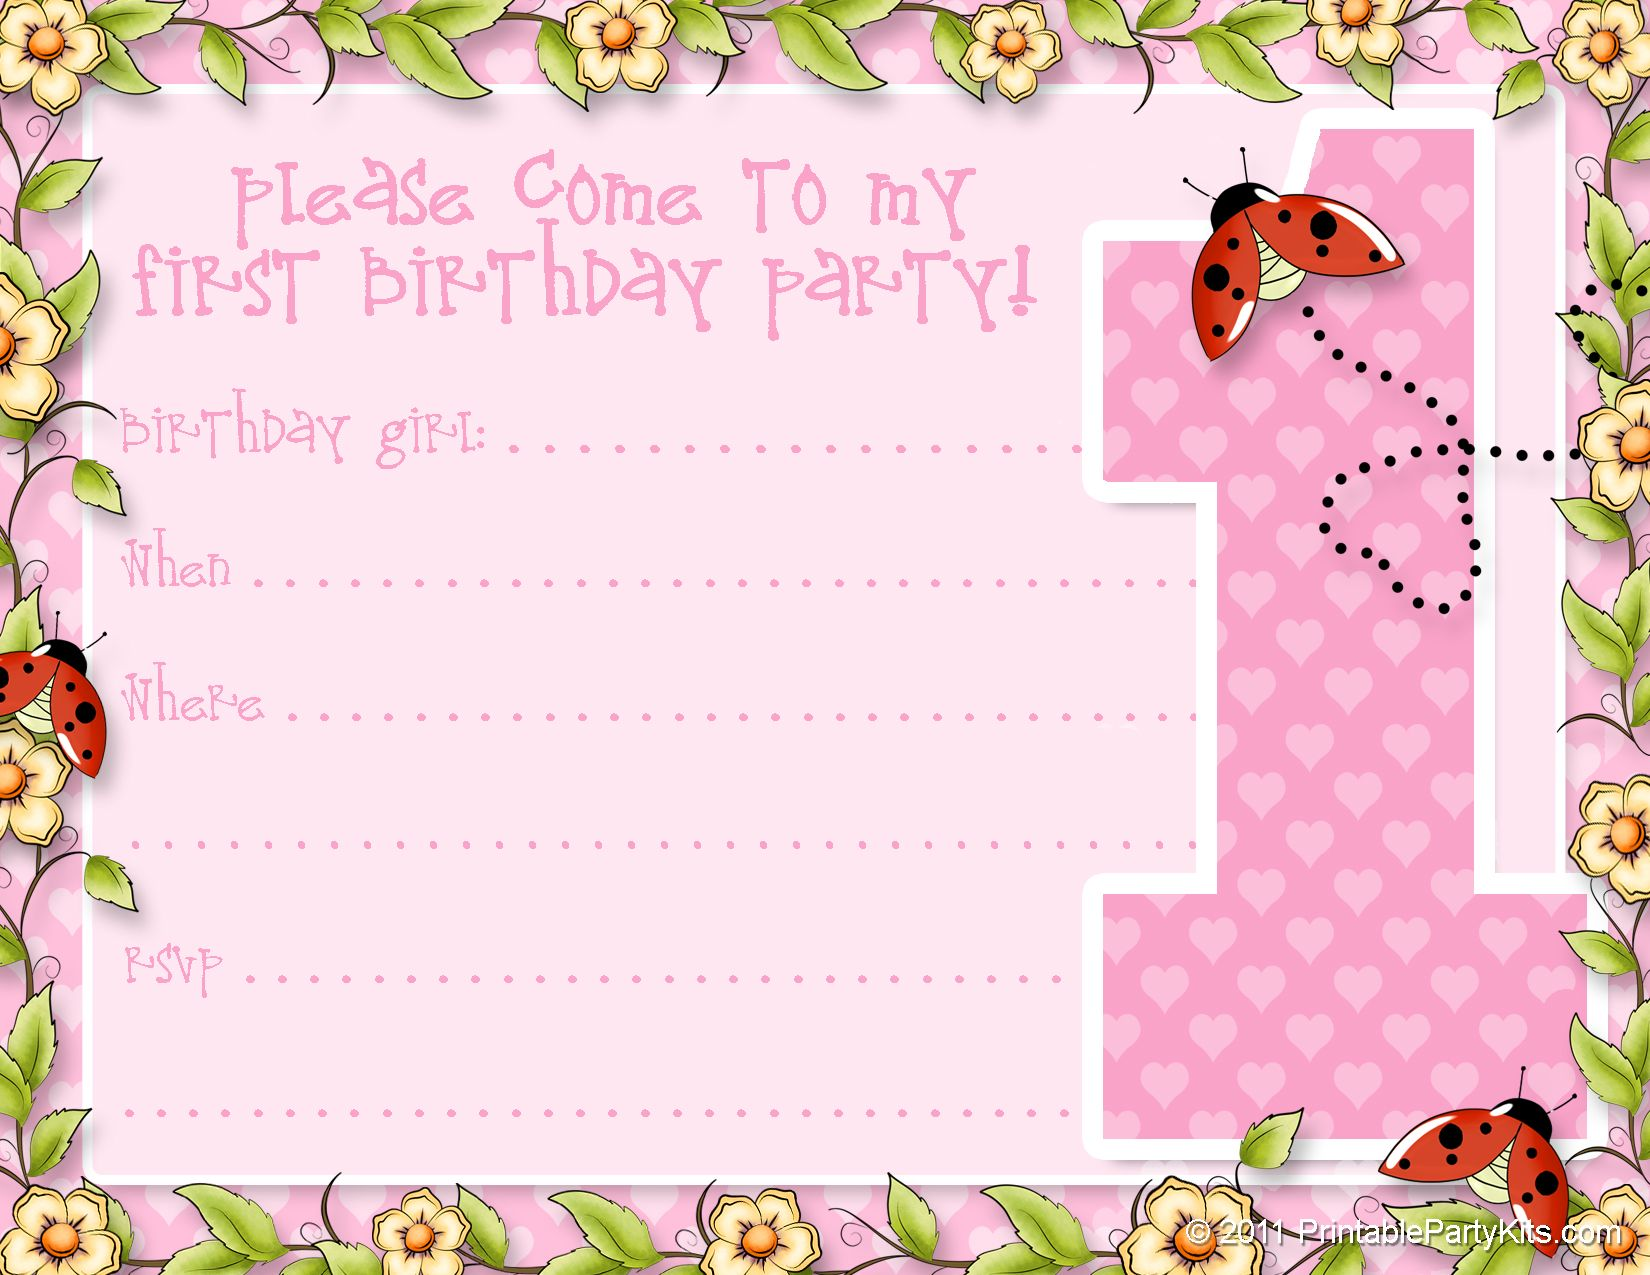 FREE PRINTABLE GIRLS 1ST BIRTHDAY INVITATION TEMPLATES - Google ...